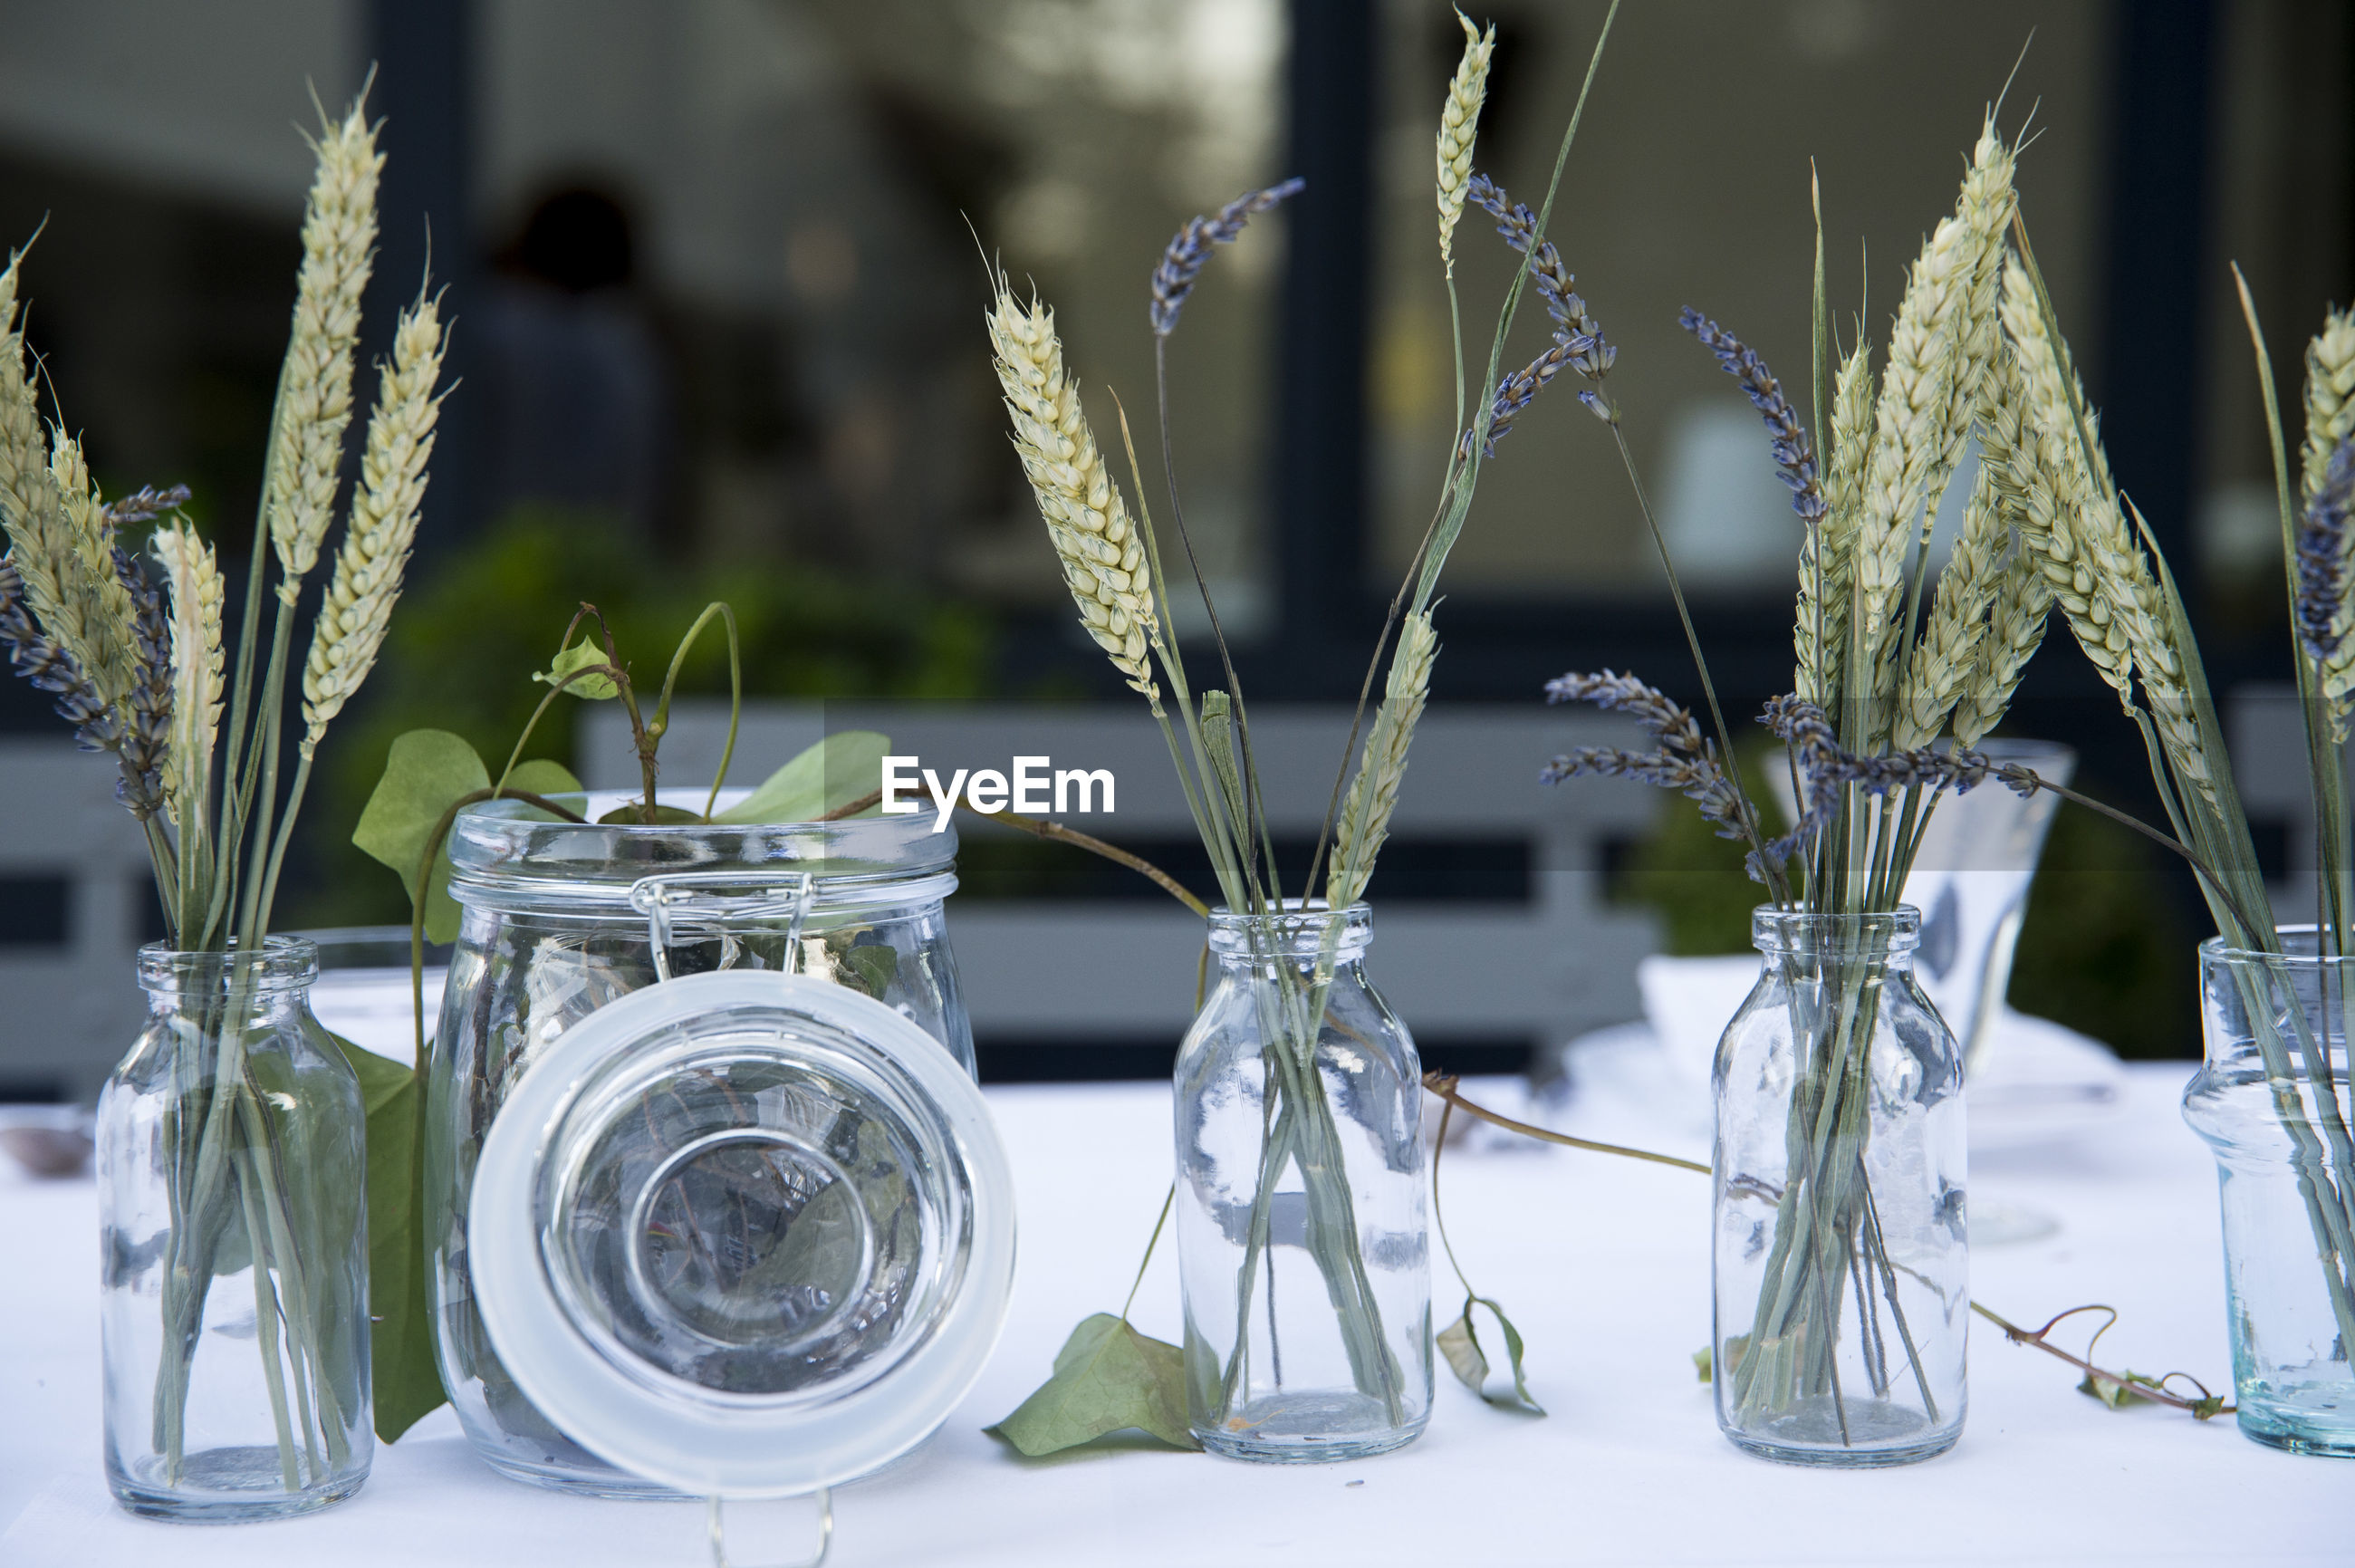 CLOSE-UP OF PLANTS IN GLASS VASE